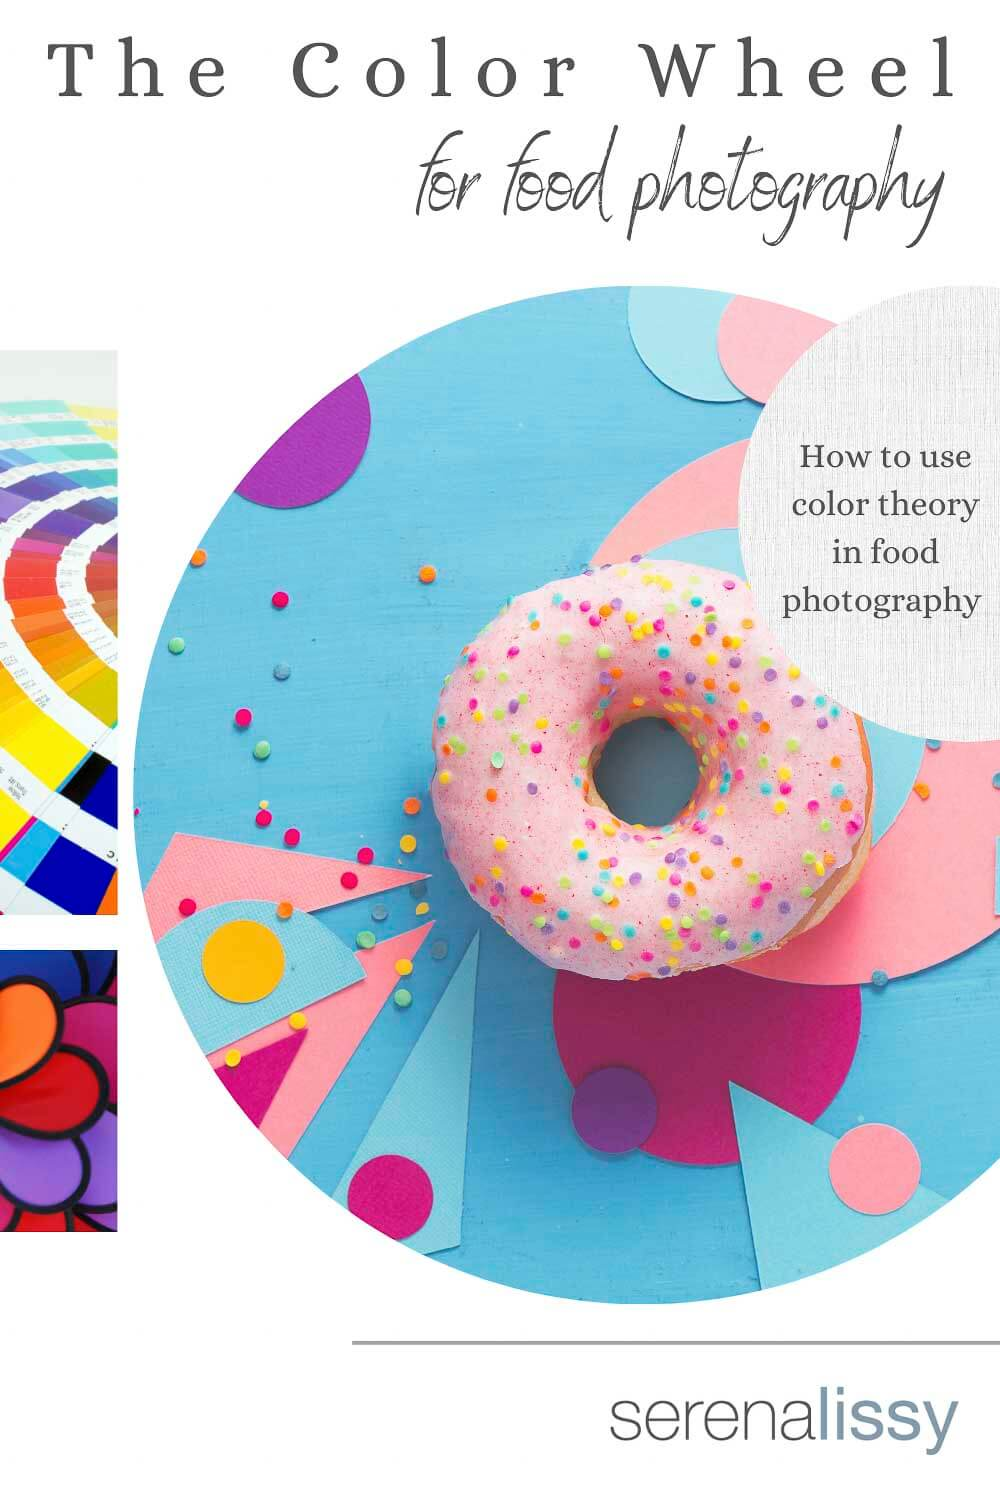 Food Photography Example of Color Wheel